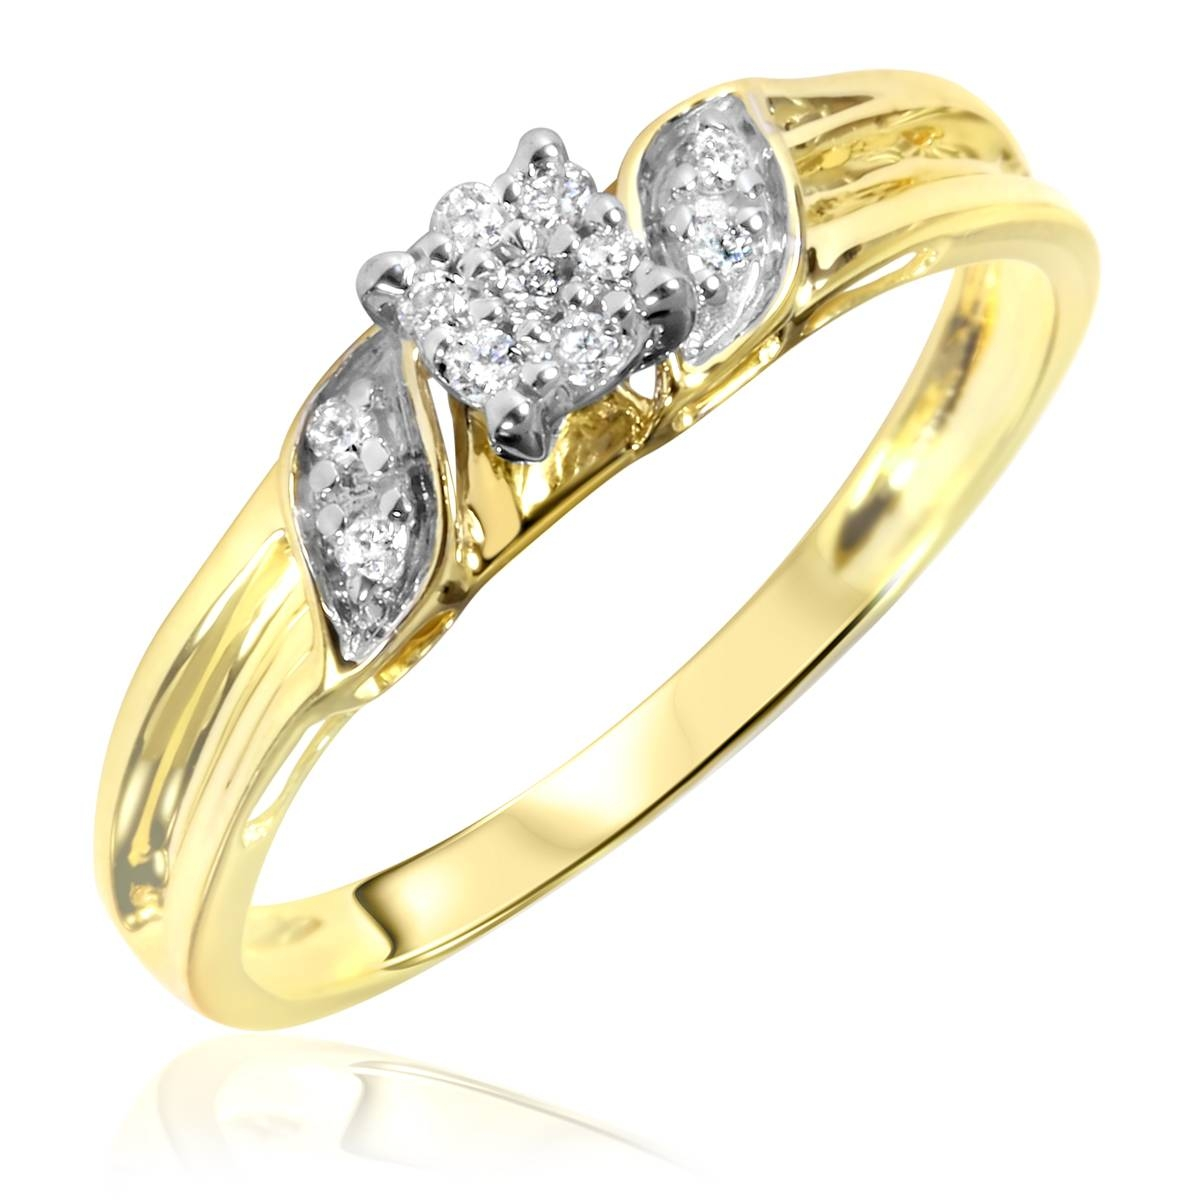 1/4 Carat Diamond Trio Wedding Ring Set 10K Yellow Gold For Engagement Rings And Wedding Ring Sets (View 3 of 15)